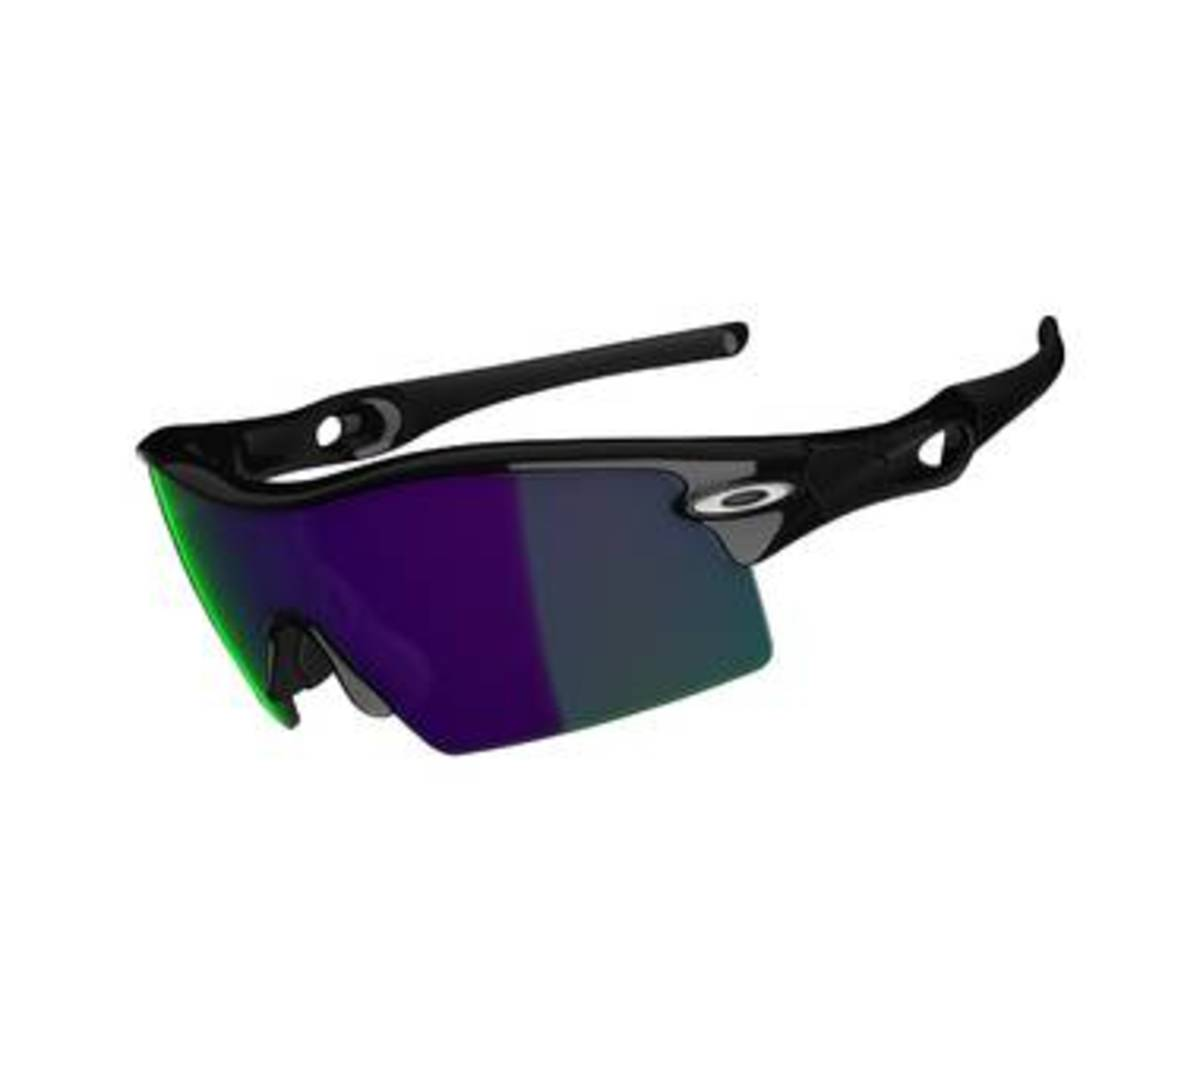 Authentic Oakley Sunglasses Knam